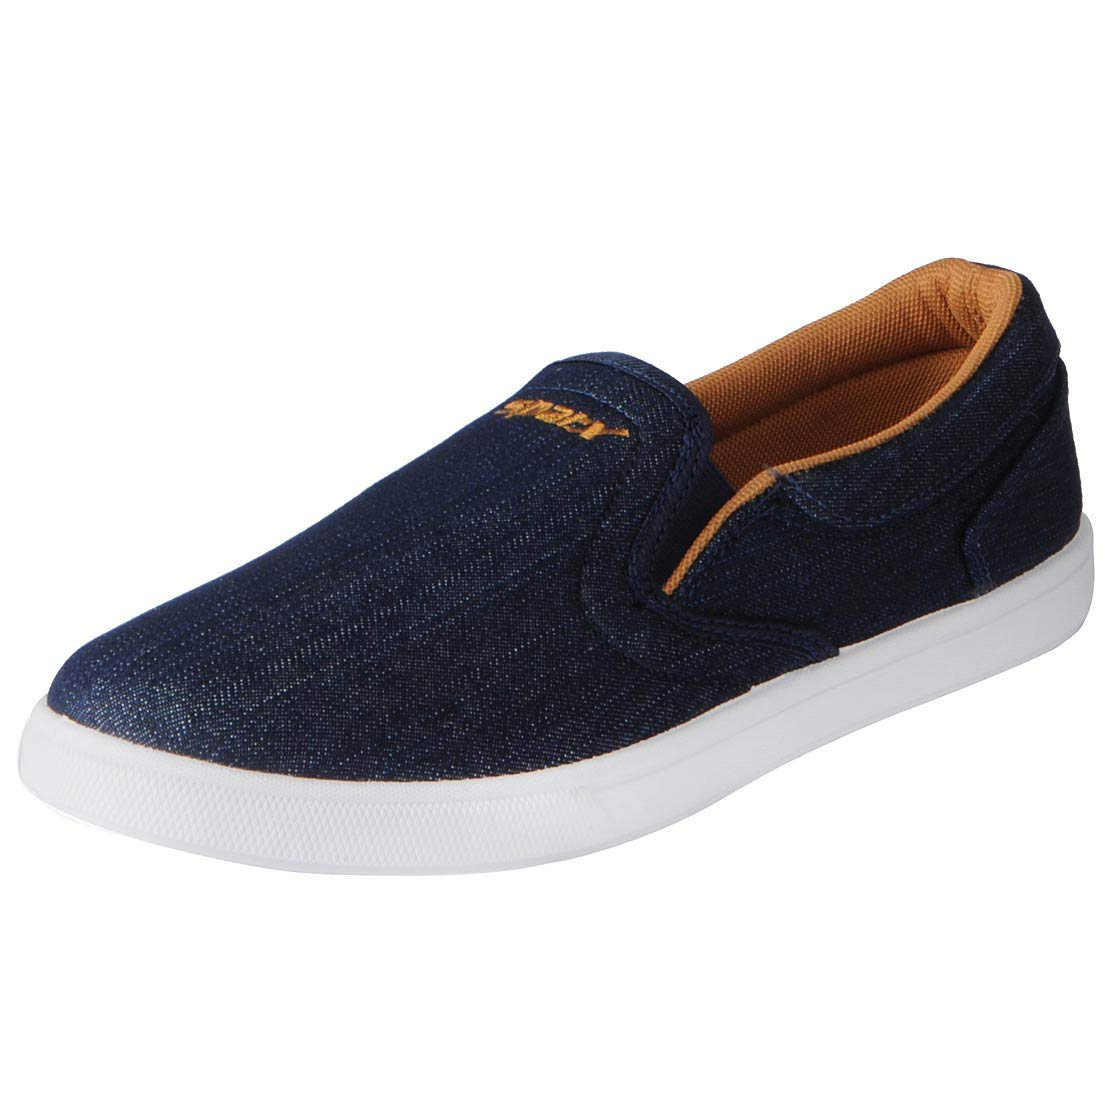 Loafers sneakers for men